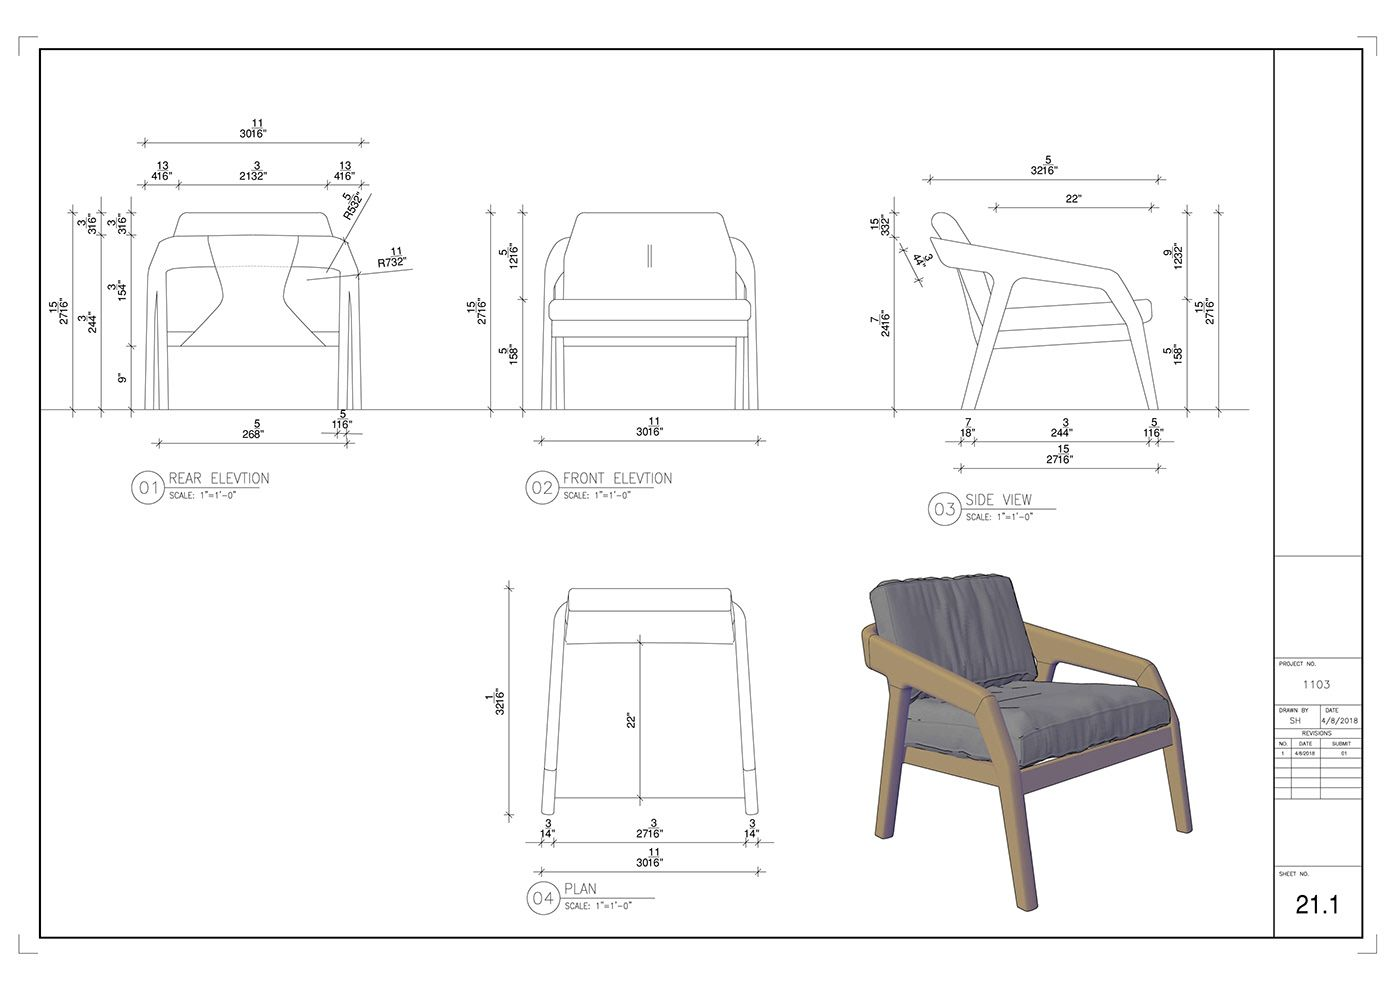 bedroom chair table on behance furniture shop drawing in 2019 rh pinterest com